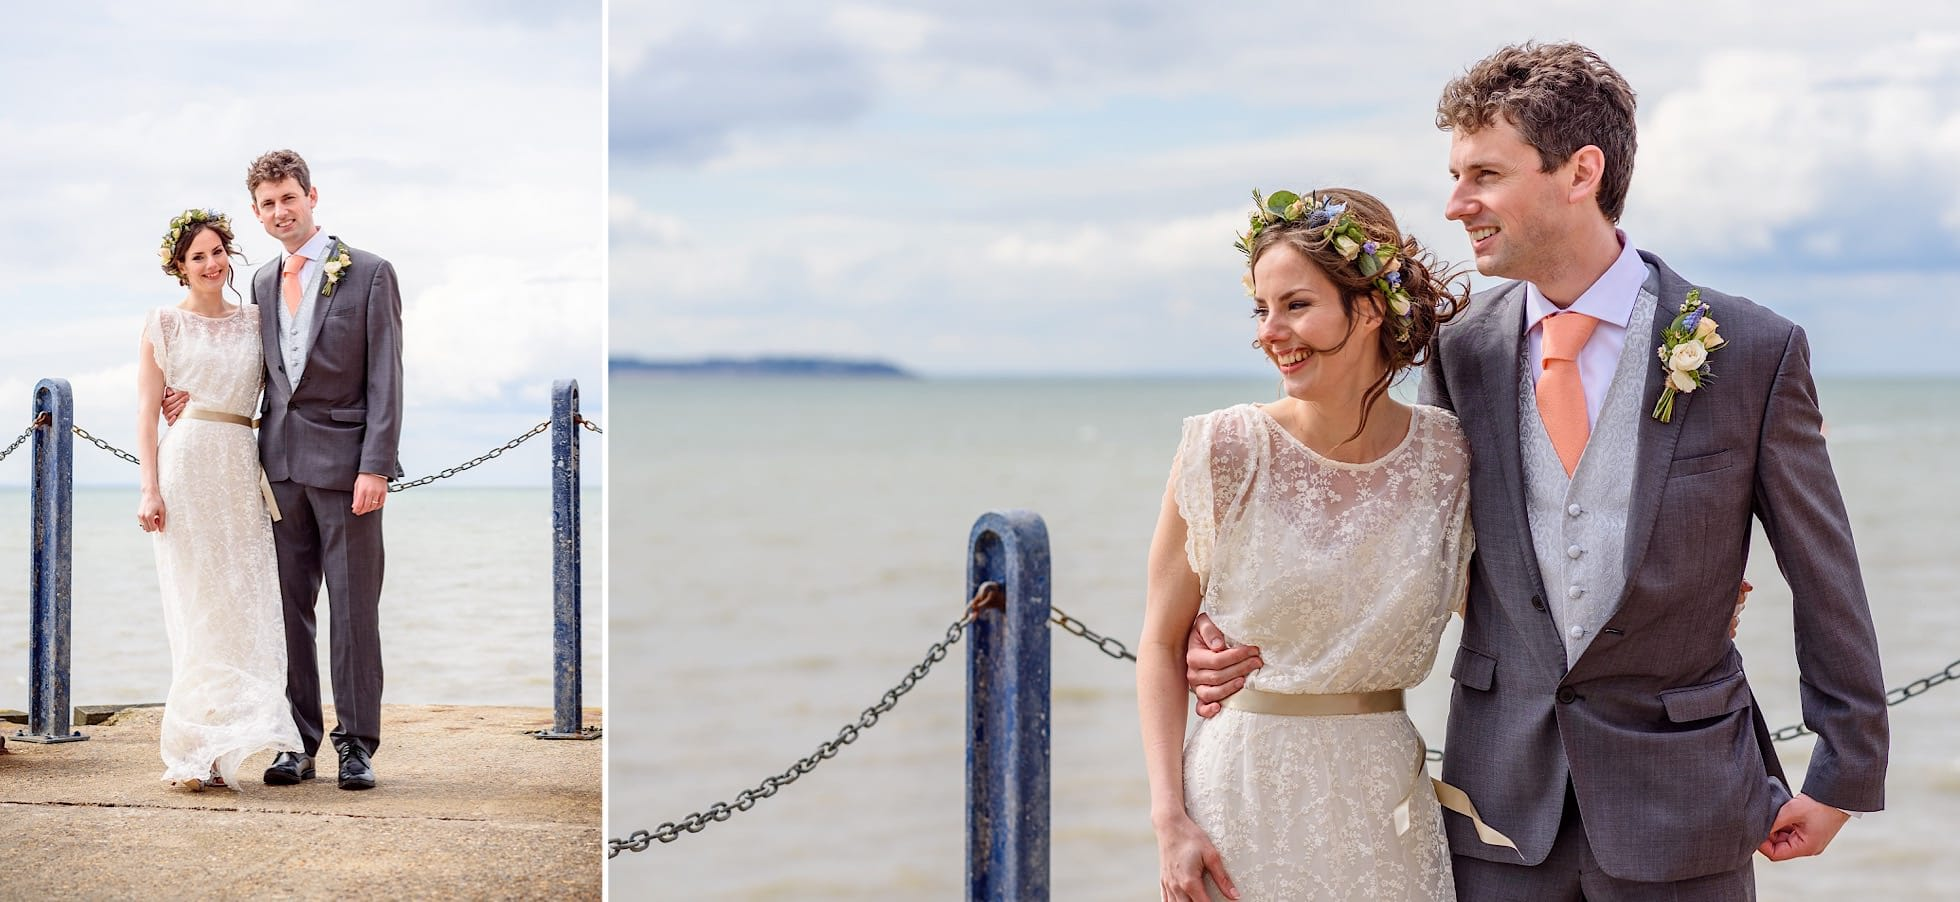 Photographs at the end of Whitstable pier